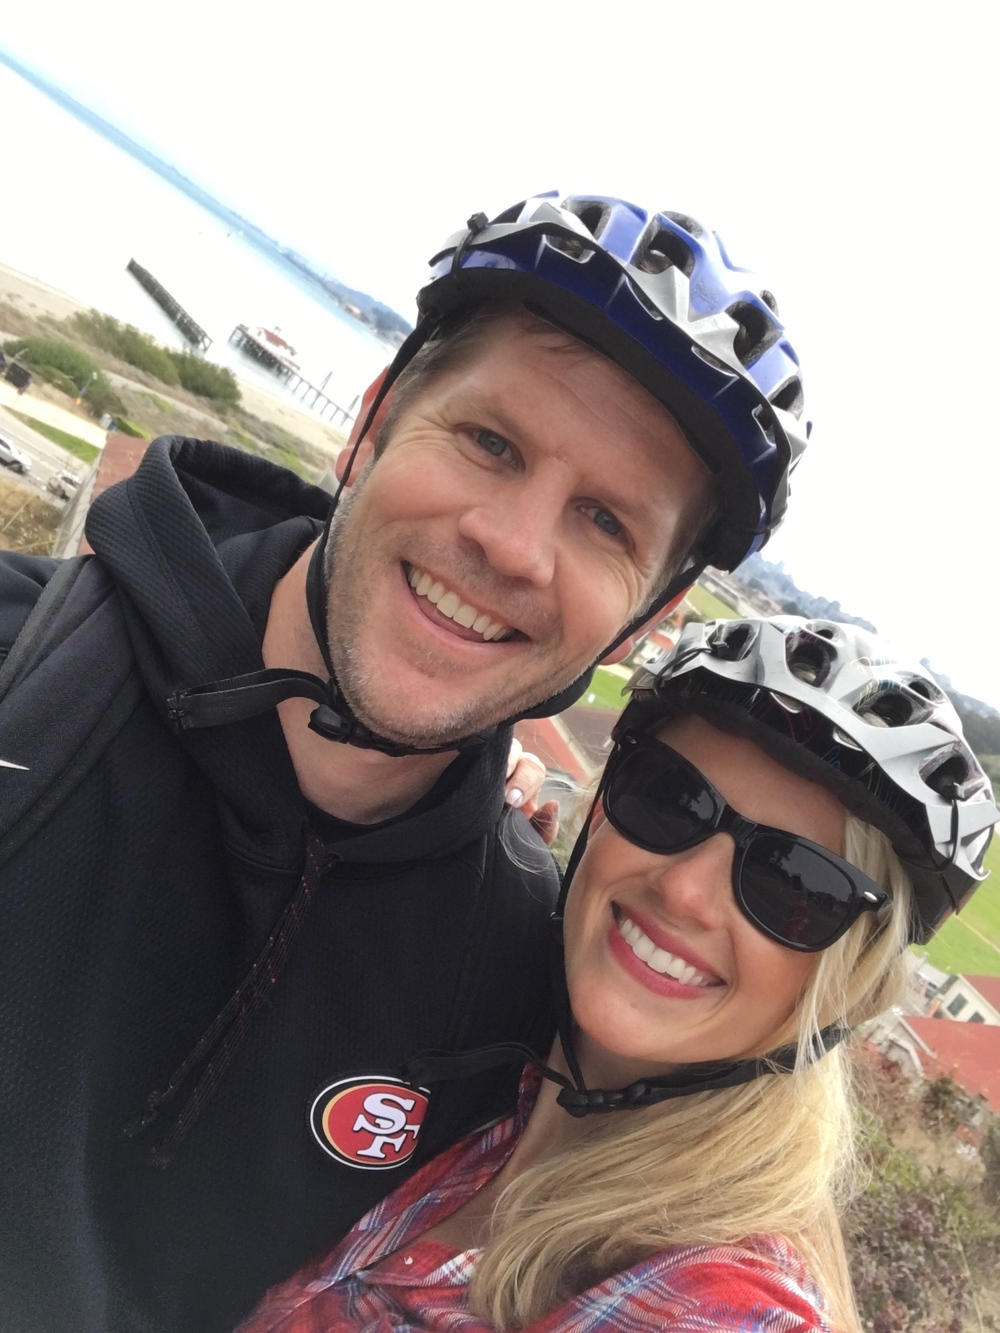 Biked from Beach Street to Presidio to the bridge to Sausalito to Mill Valley to Tiburon!